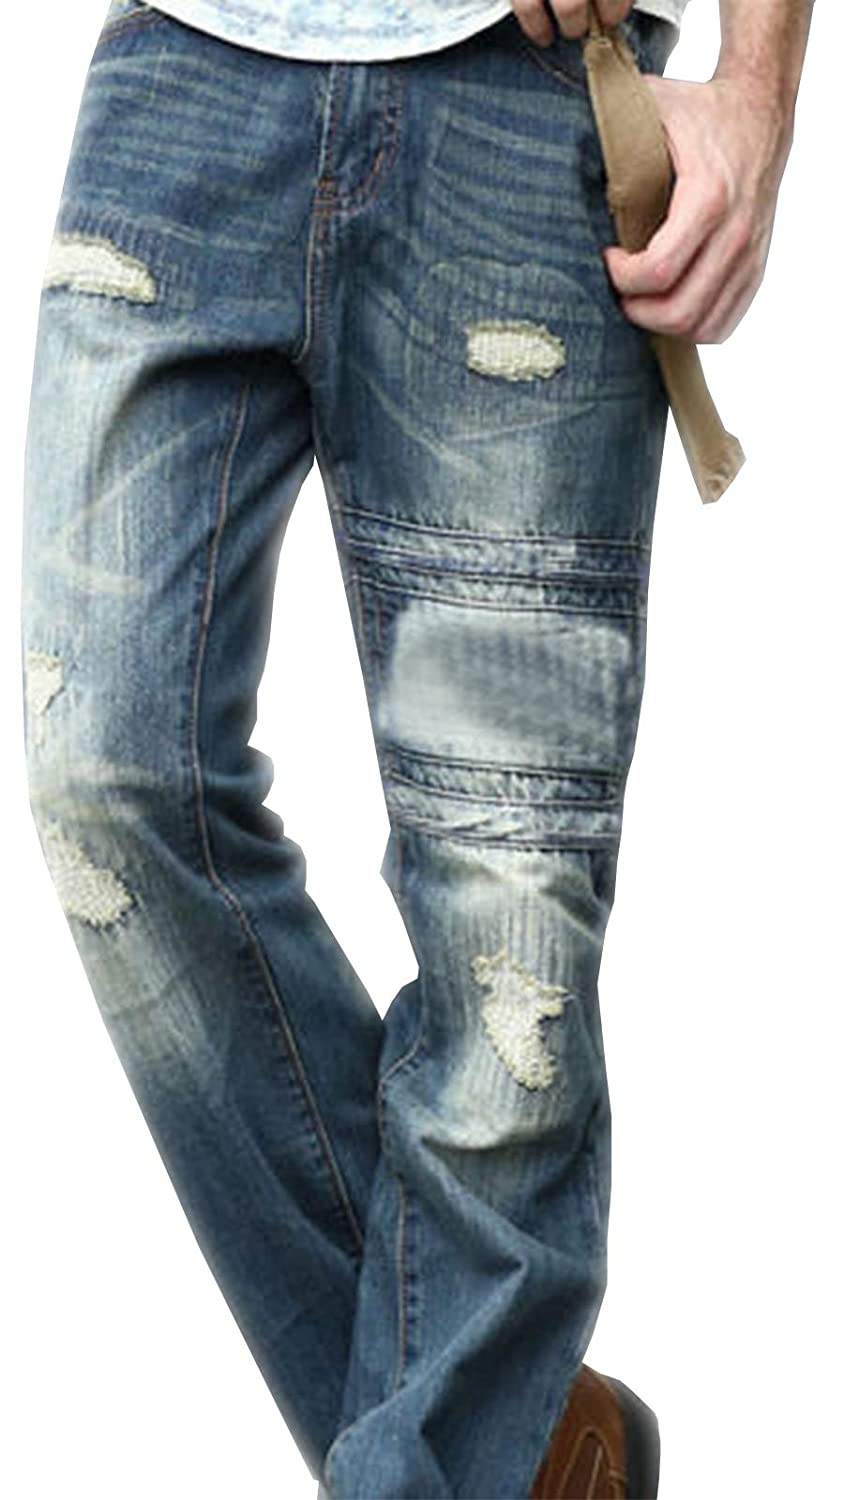 be57069ab88 newfacelook Mens Jeans Ripped Fashion Blue Denim Jeans Pants Trousers MAX   Amazon.co.uk  Clothing